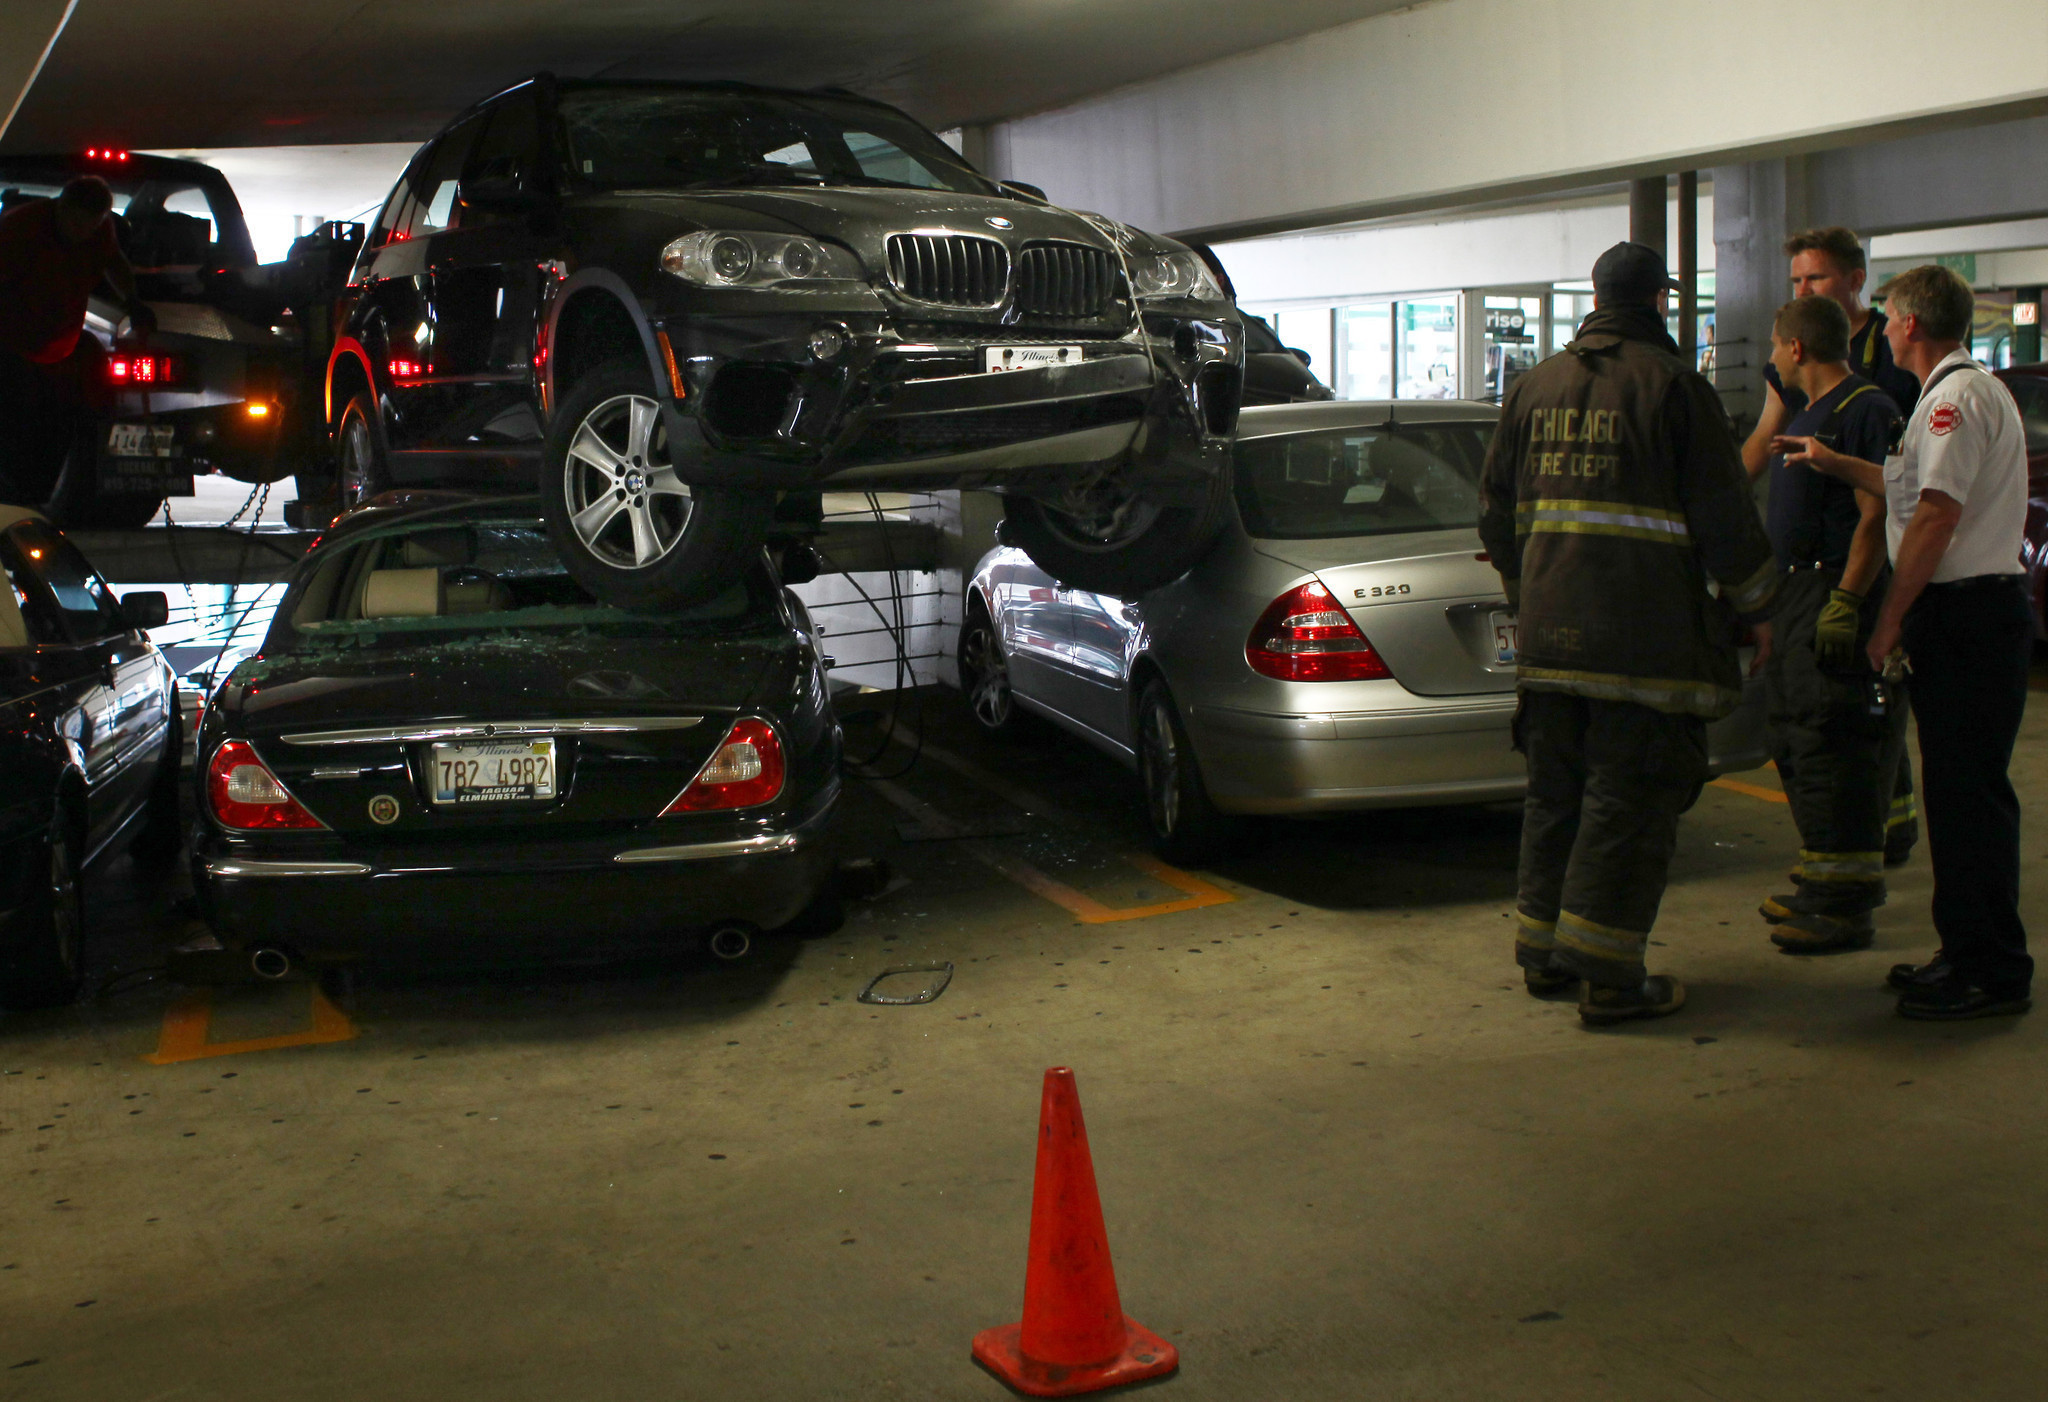 Suv Crashes Through Barrier Lands On Cars In Loop Garage